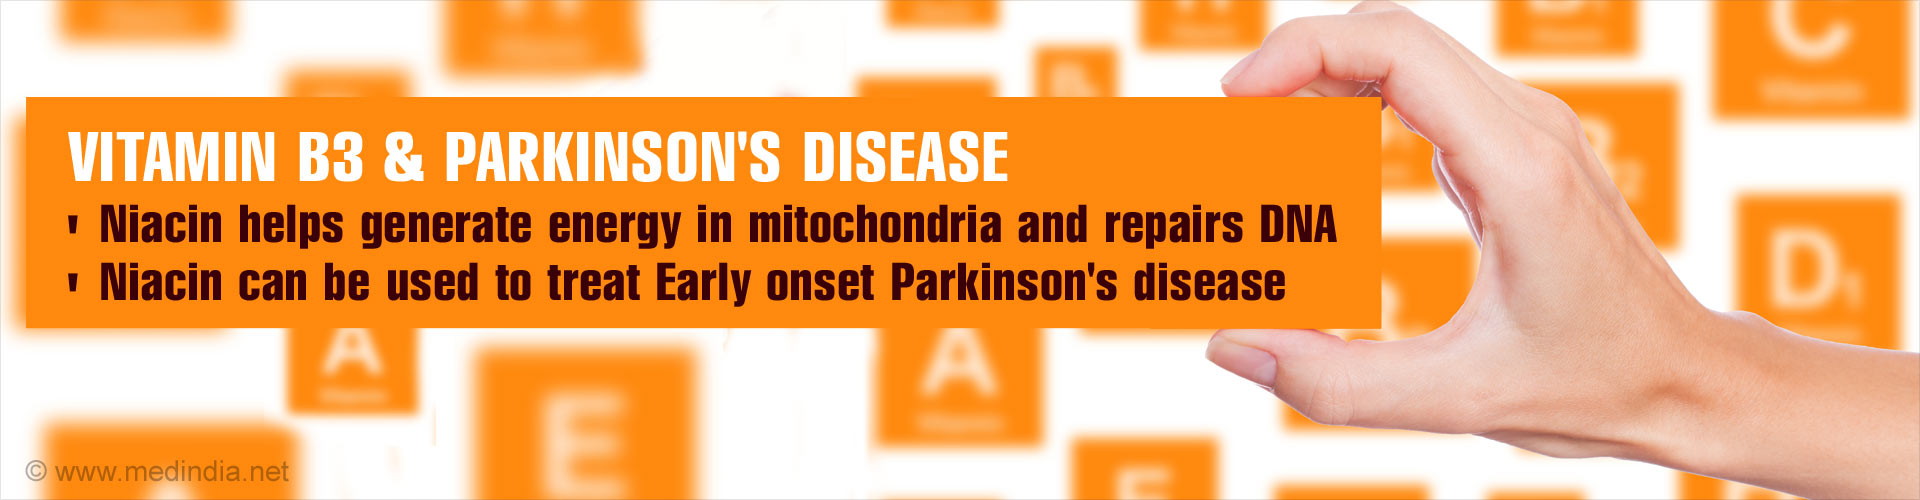 Vitamin B3 & Parkinson's Disease - Niacin helps generate energy in mitochondria and repairs DNA - Niacin can be used to treat early onset Parkinson's disease